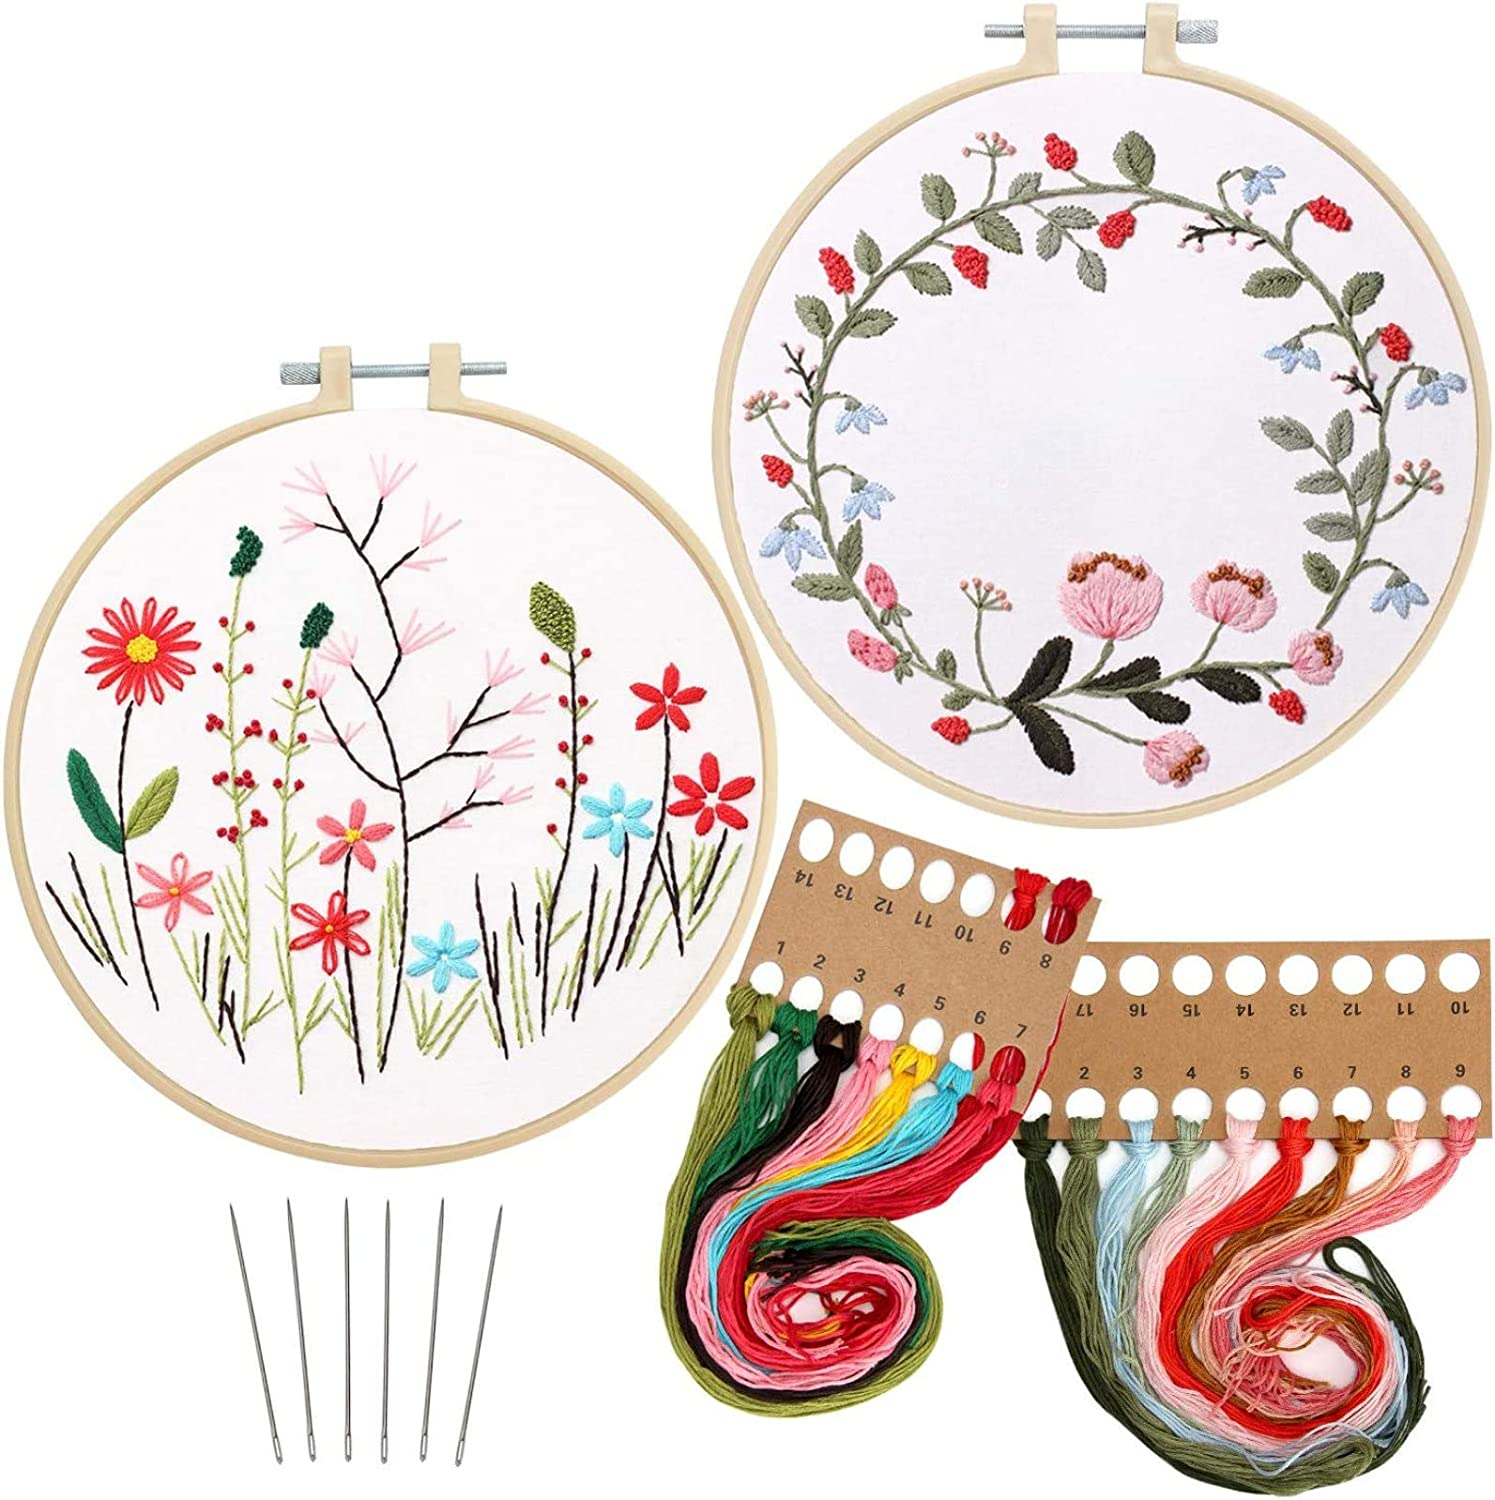 New item 2 Pack Embroidery Kit with Pattern of Animer and price revision Range Embroi Stamped Full